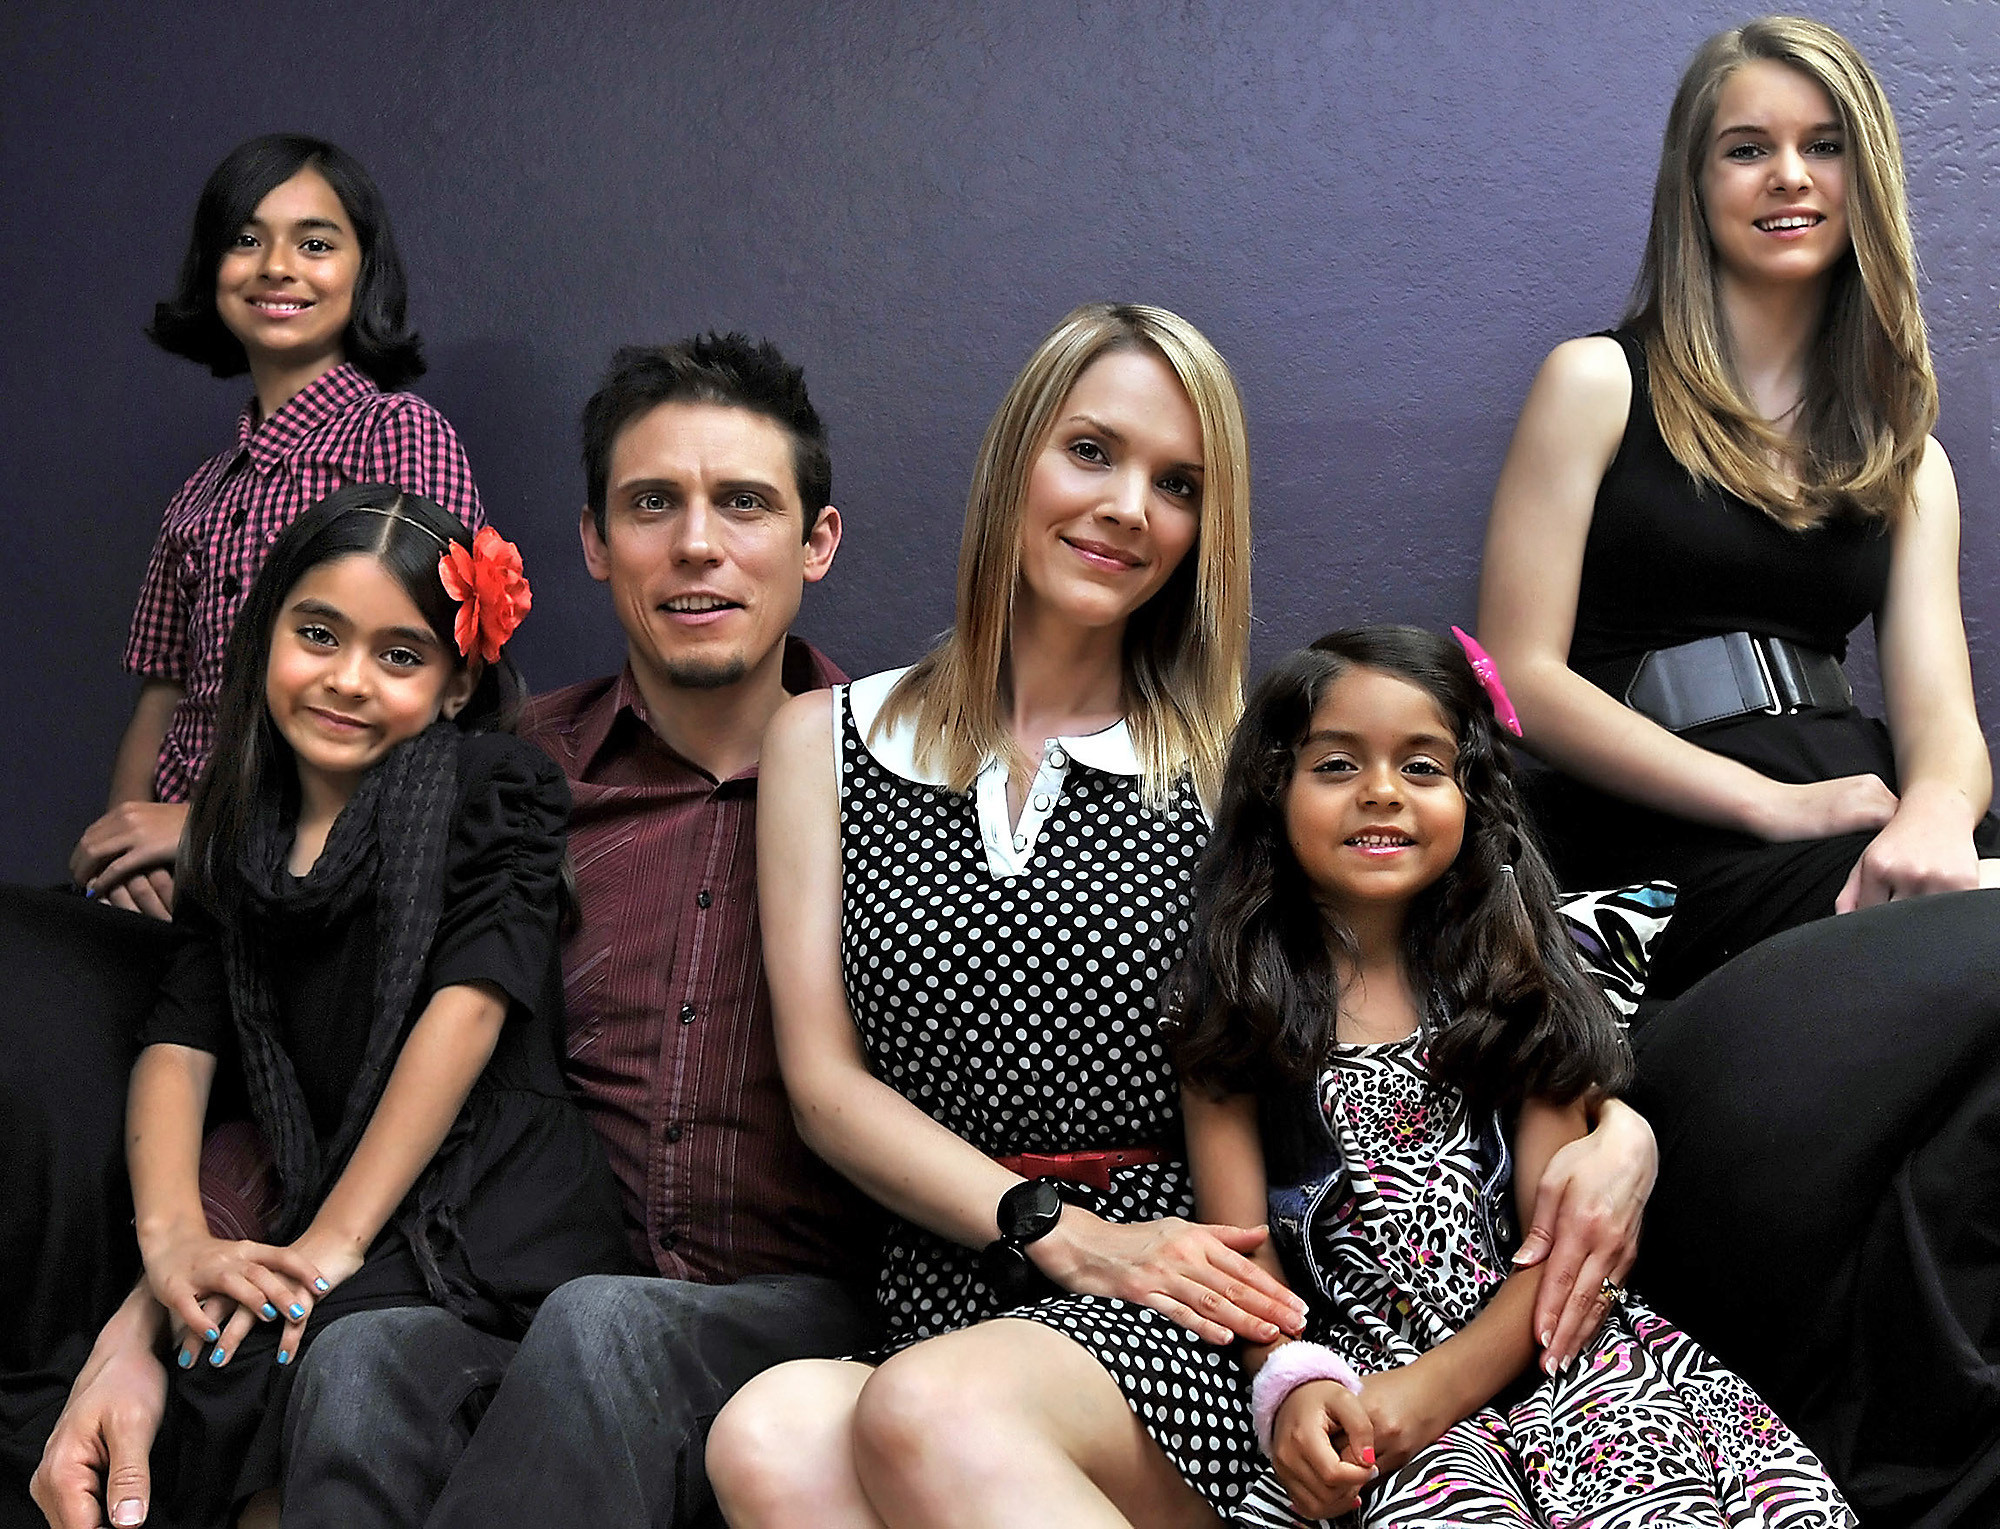 Gcc instructor and family 39 s reality tv show attracts viewers la times - Reality tv shows ...